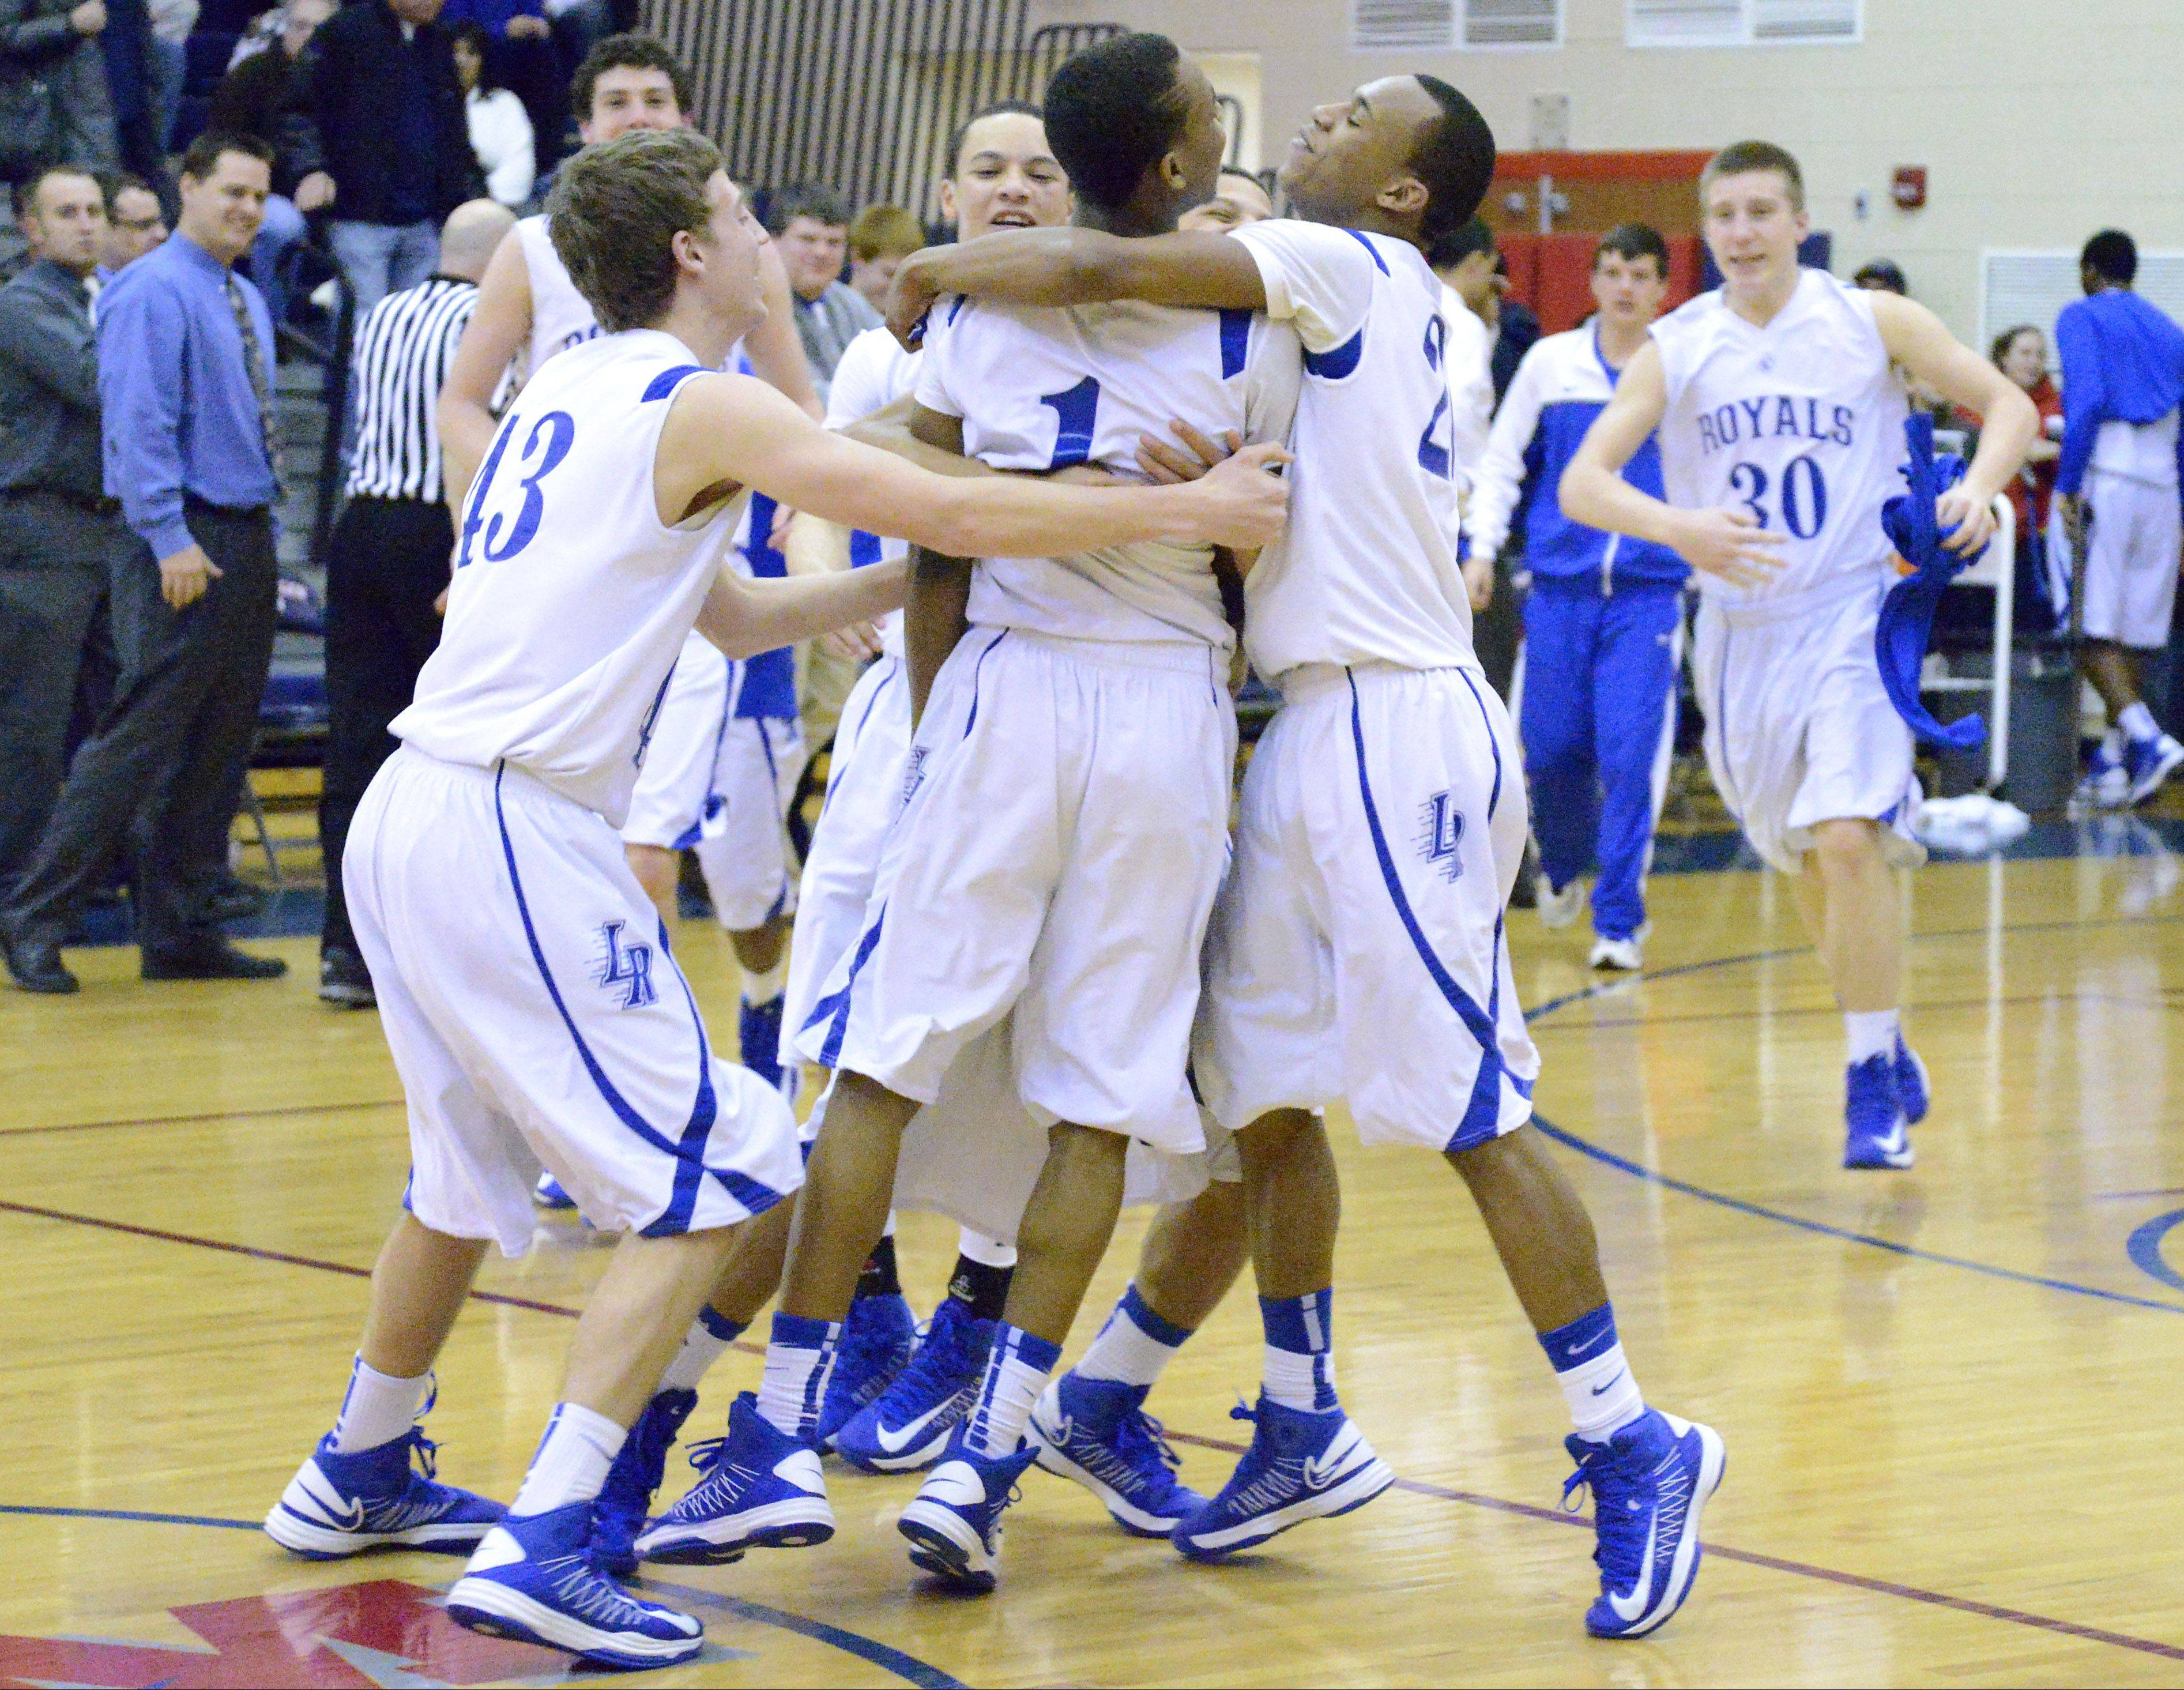 Larkin's Jack McCracken, Quantice Hunter, Quentin Ruff and teammates embrace after their win over St. Charles North in the Class 4A regional championship game on Friday, March 1.